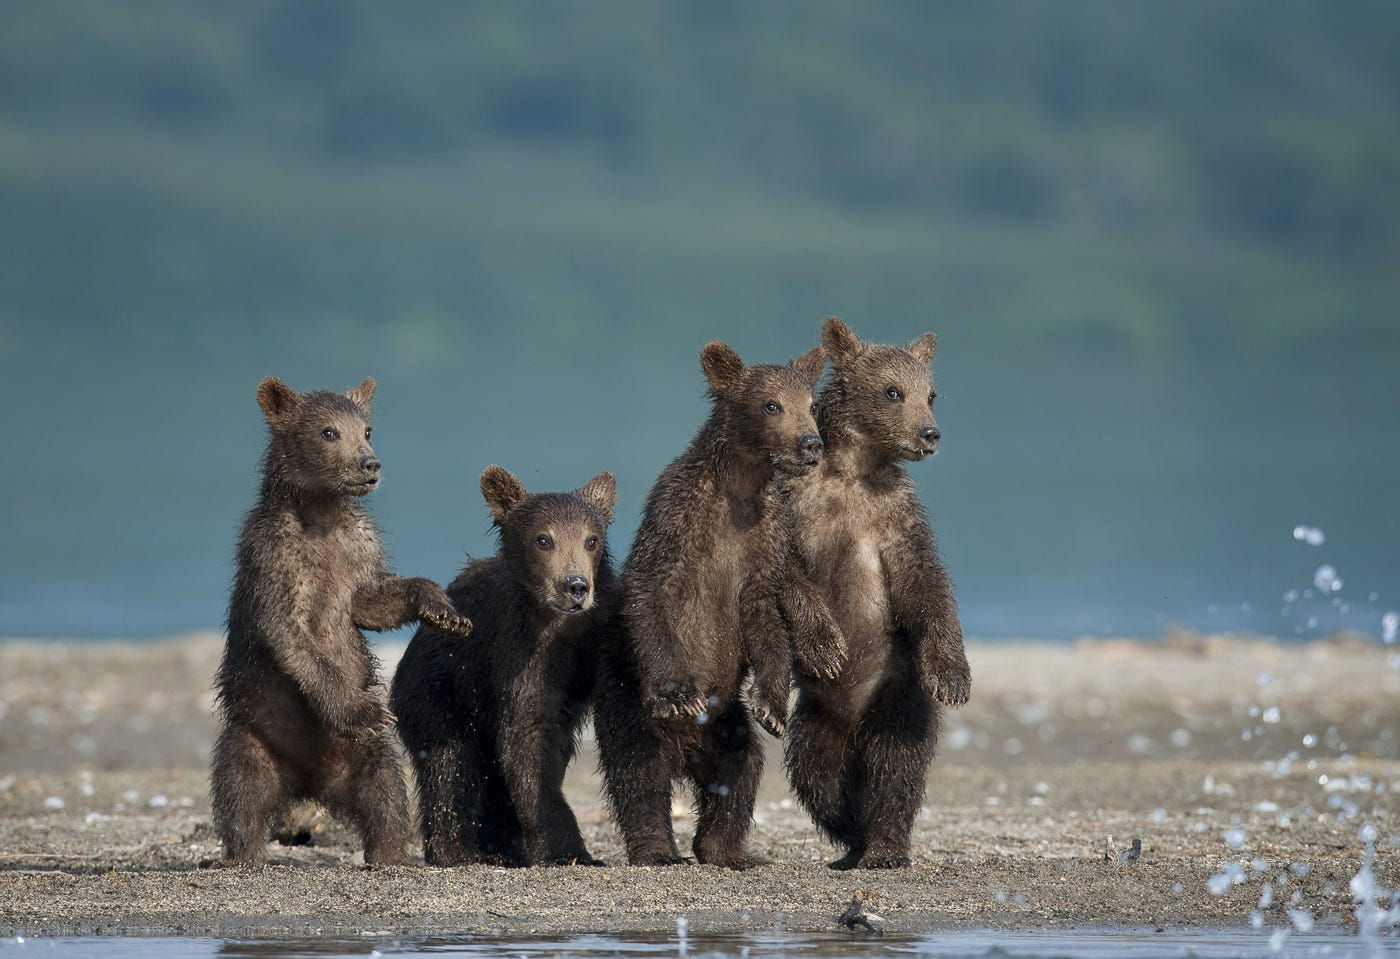 Ungentle charm of Kamchatka bears in photos by Sergey Ivanov - 2